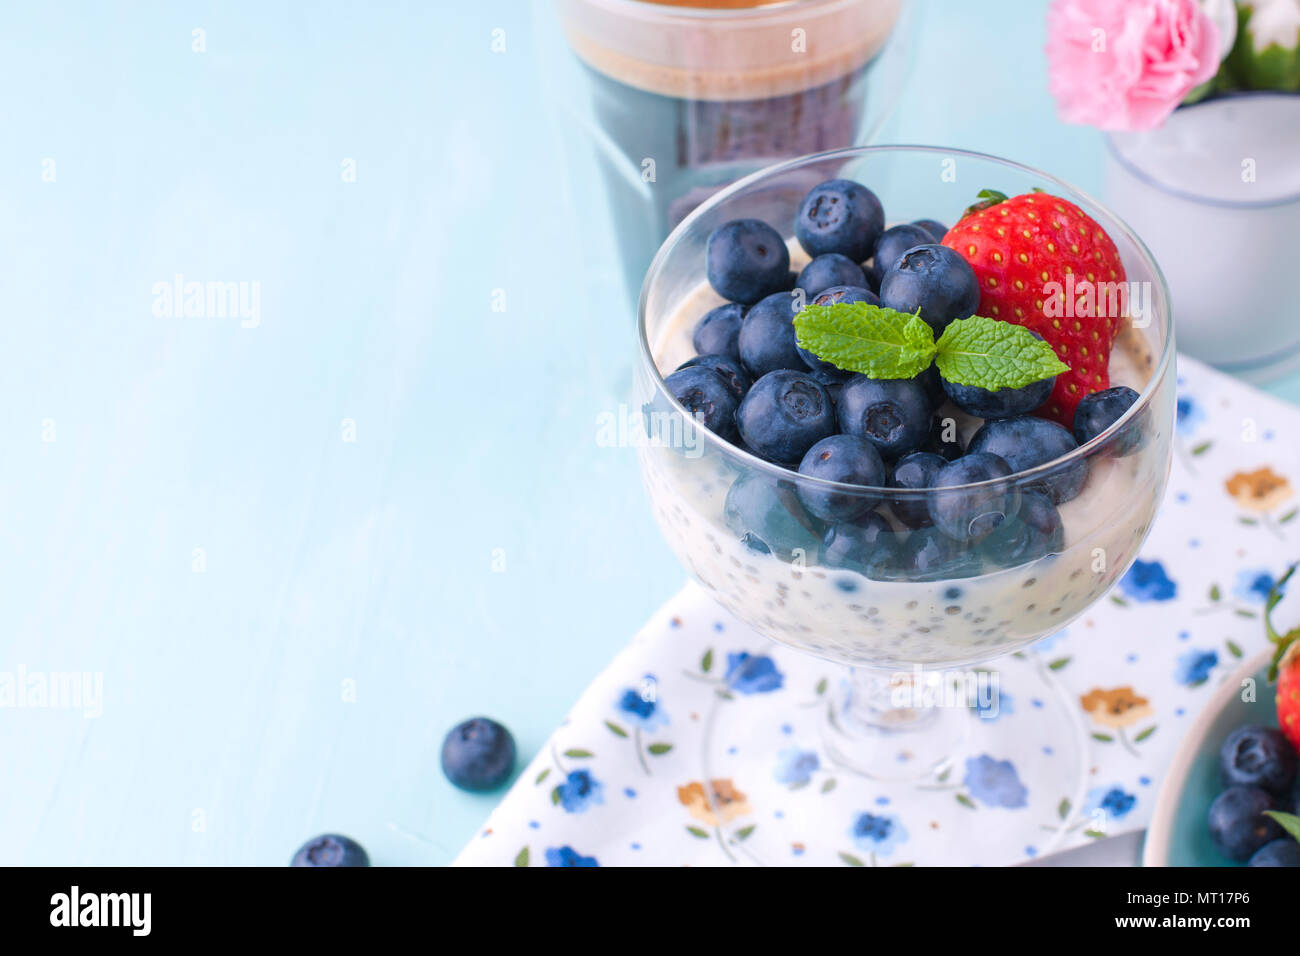 A glass of coffee and pudding chia with blueberries and strawberries for breakfast. Vegetarian food. Blue background. Napkin with flowers. Bright colors. - Stock Image